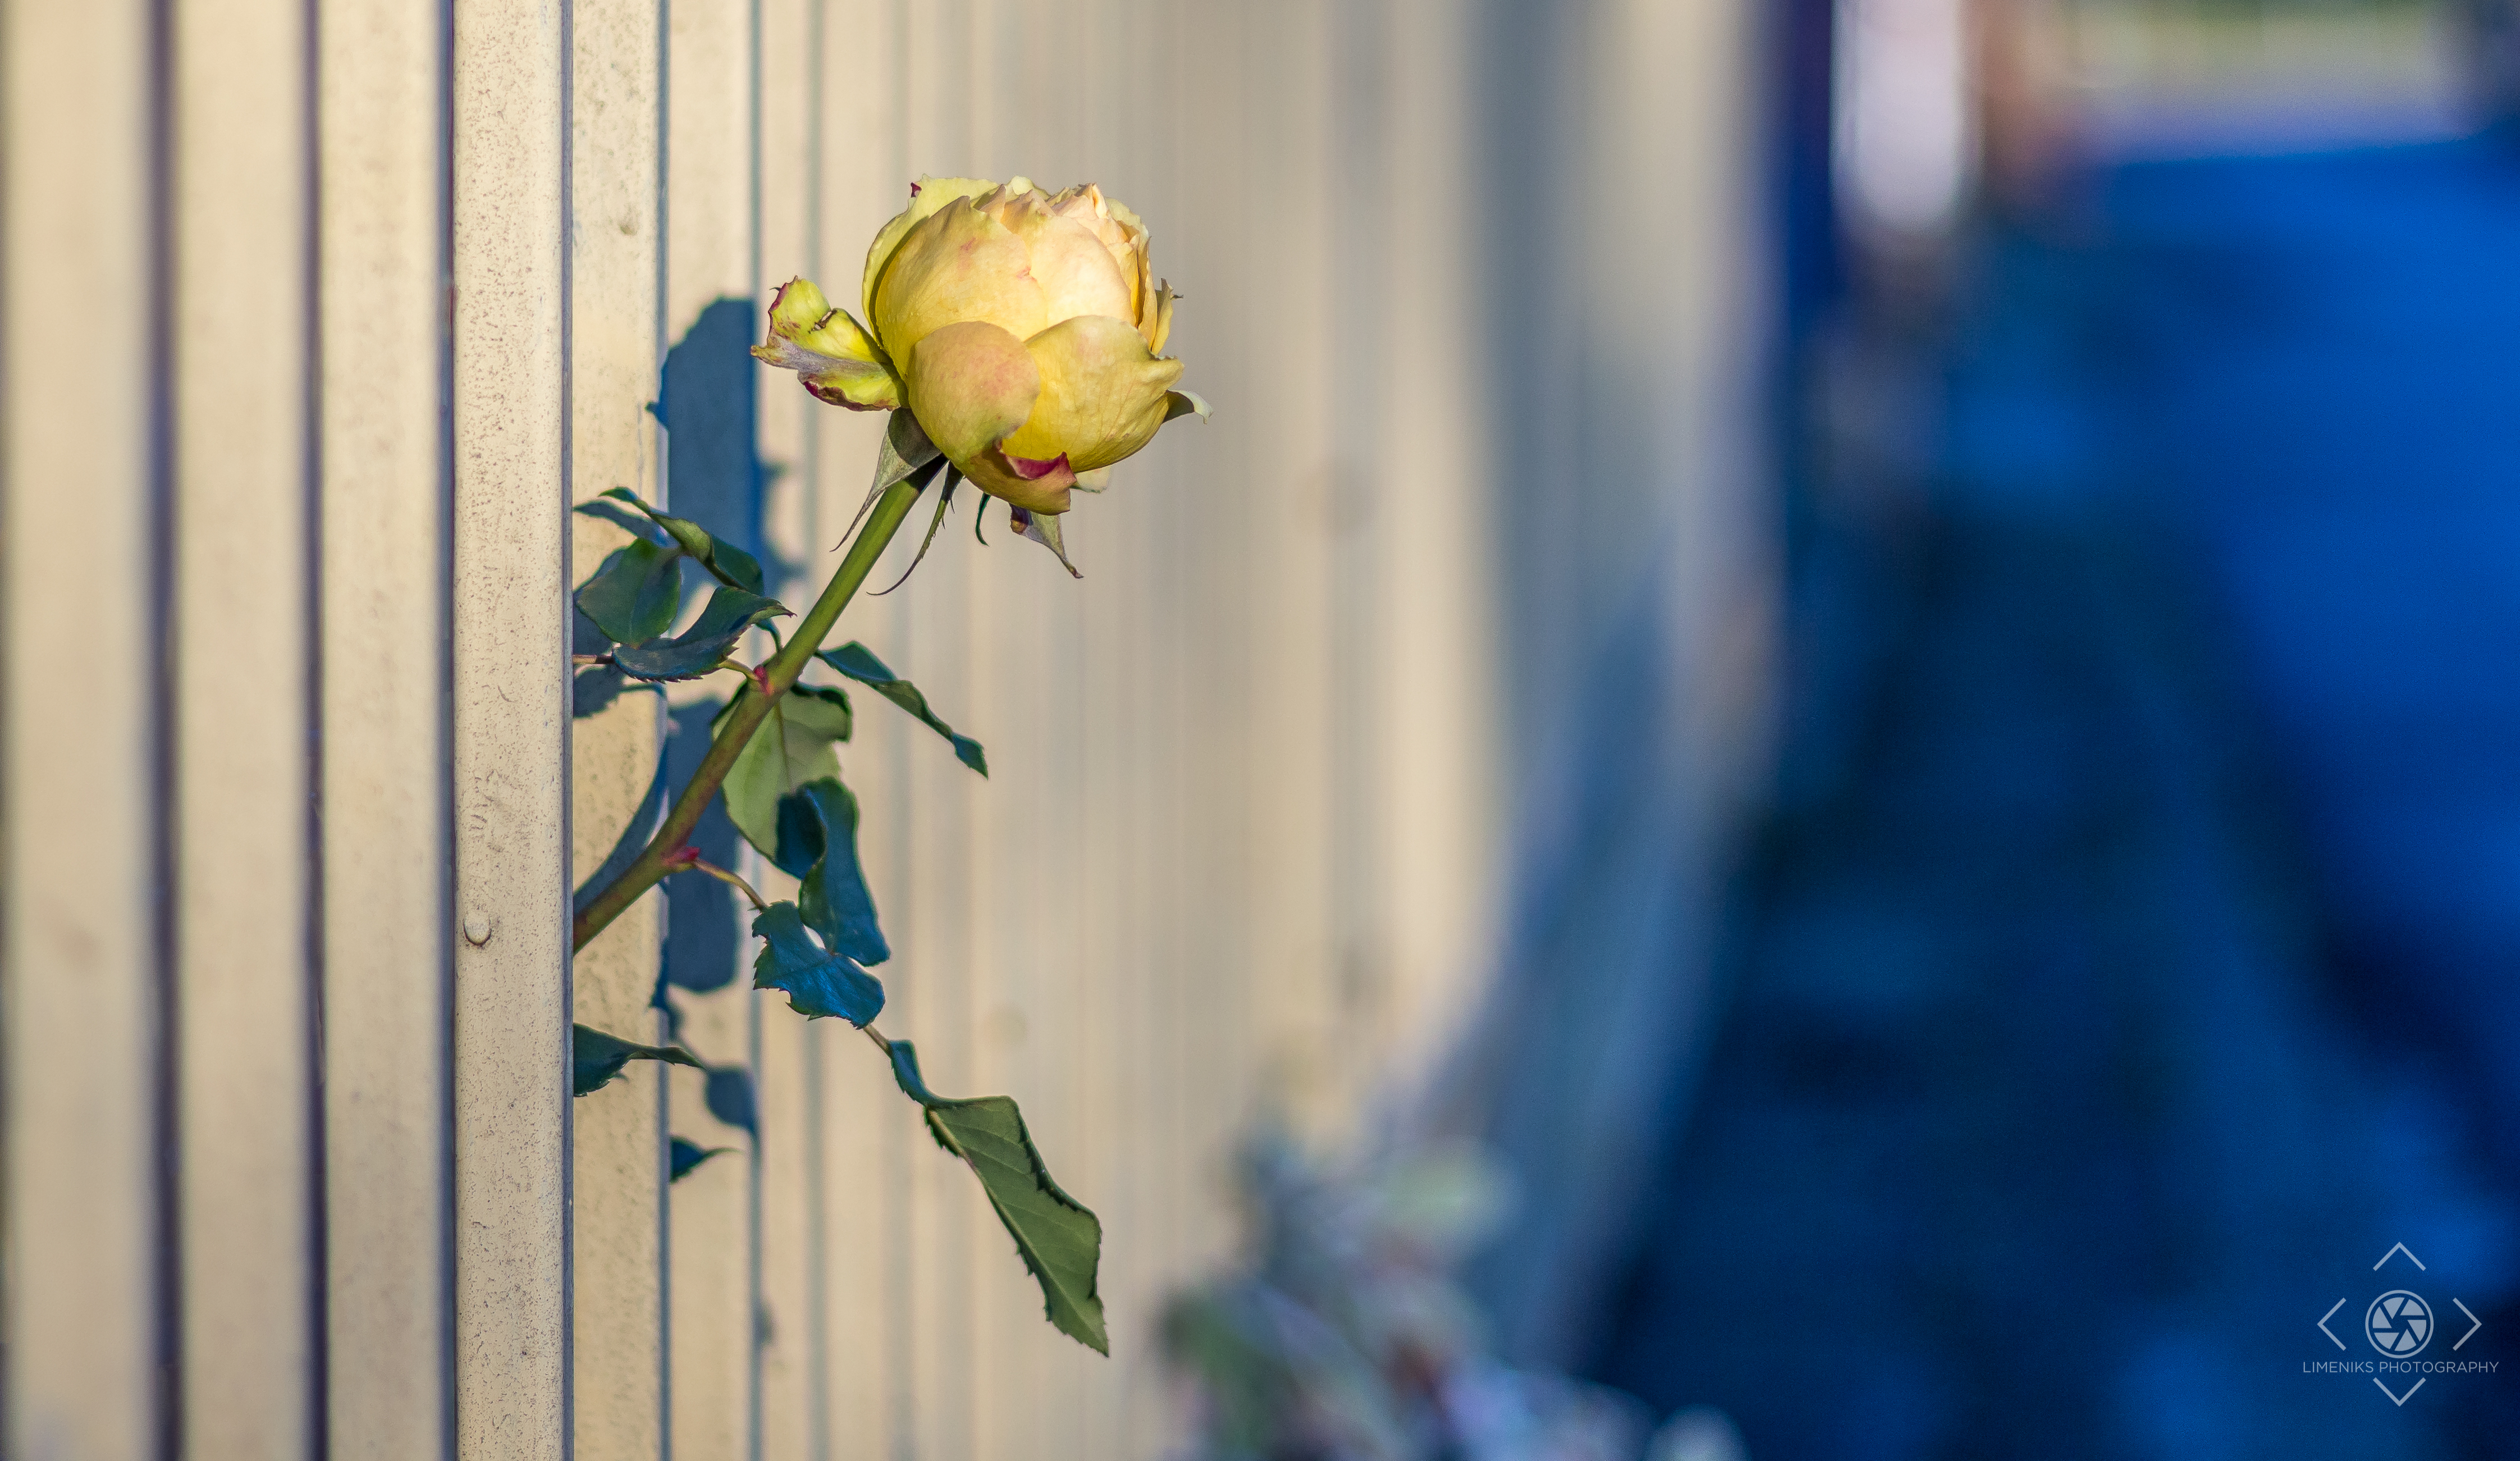 rose in fences Fences - spiteful meanness, abuse in many forms, words hurt denzel washington plays troy maxson and viola davis plays rose maxson in fences from paramount pictures directed by denzel washington from a screenplay by august wilson.